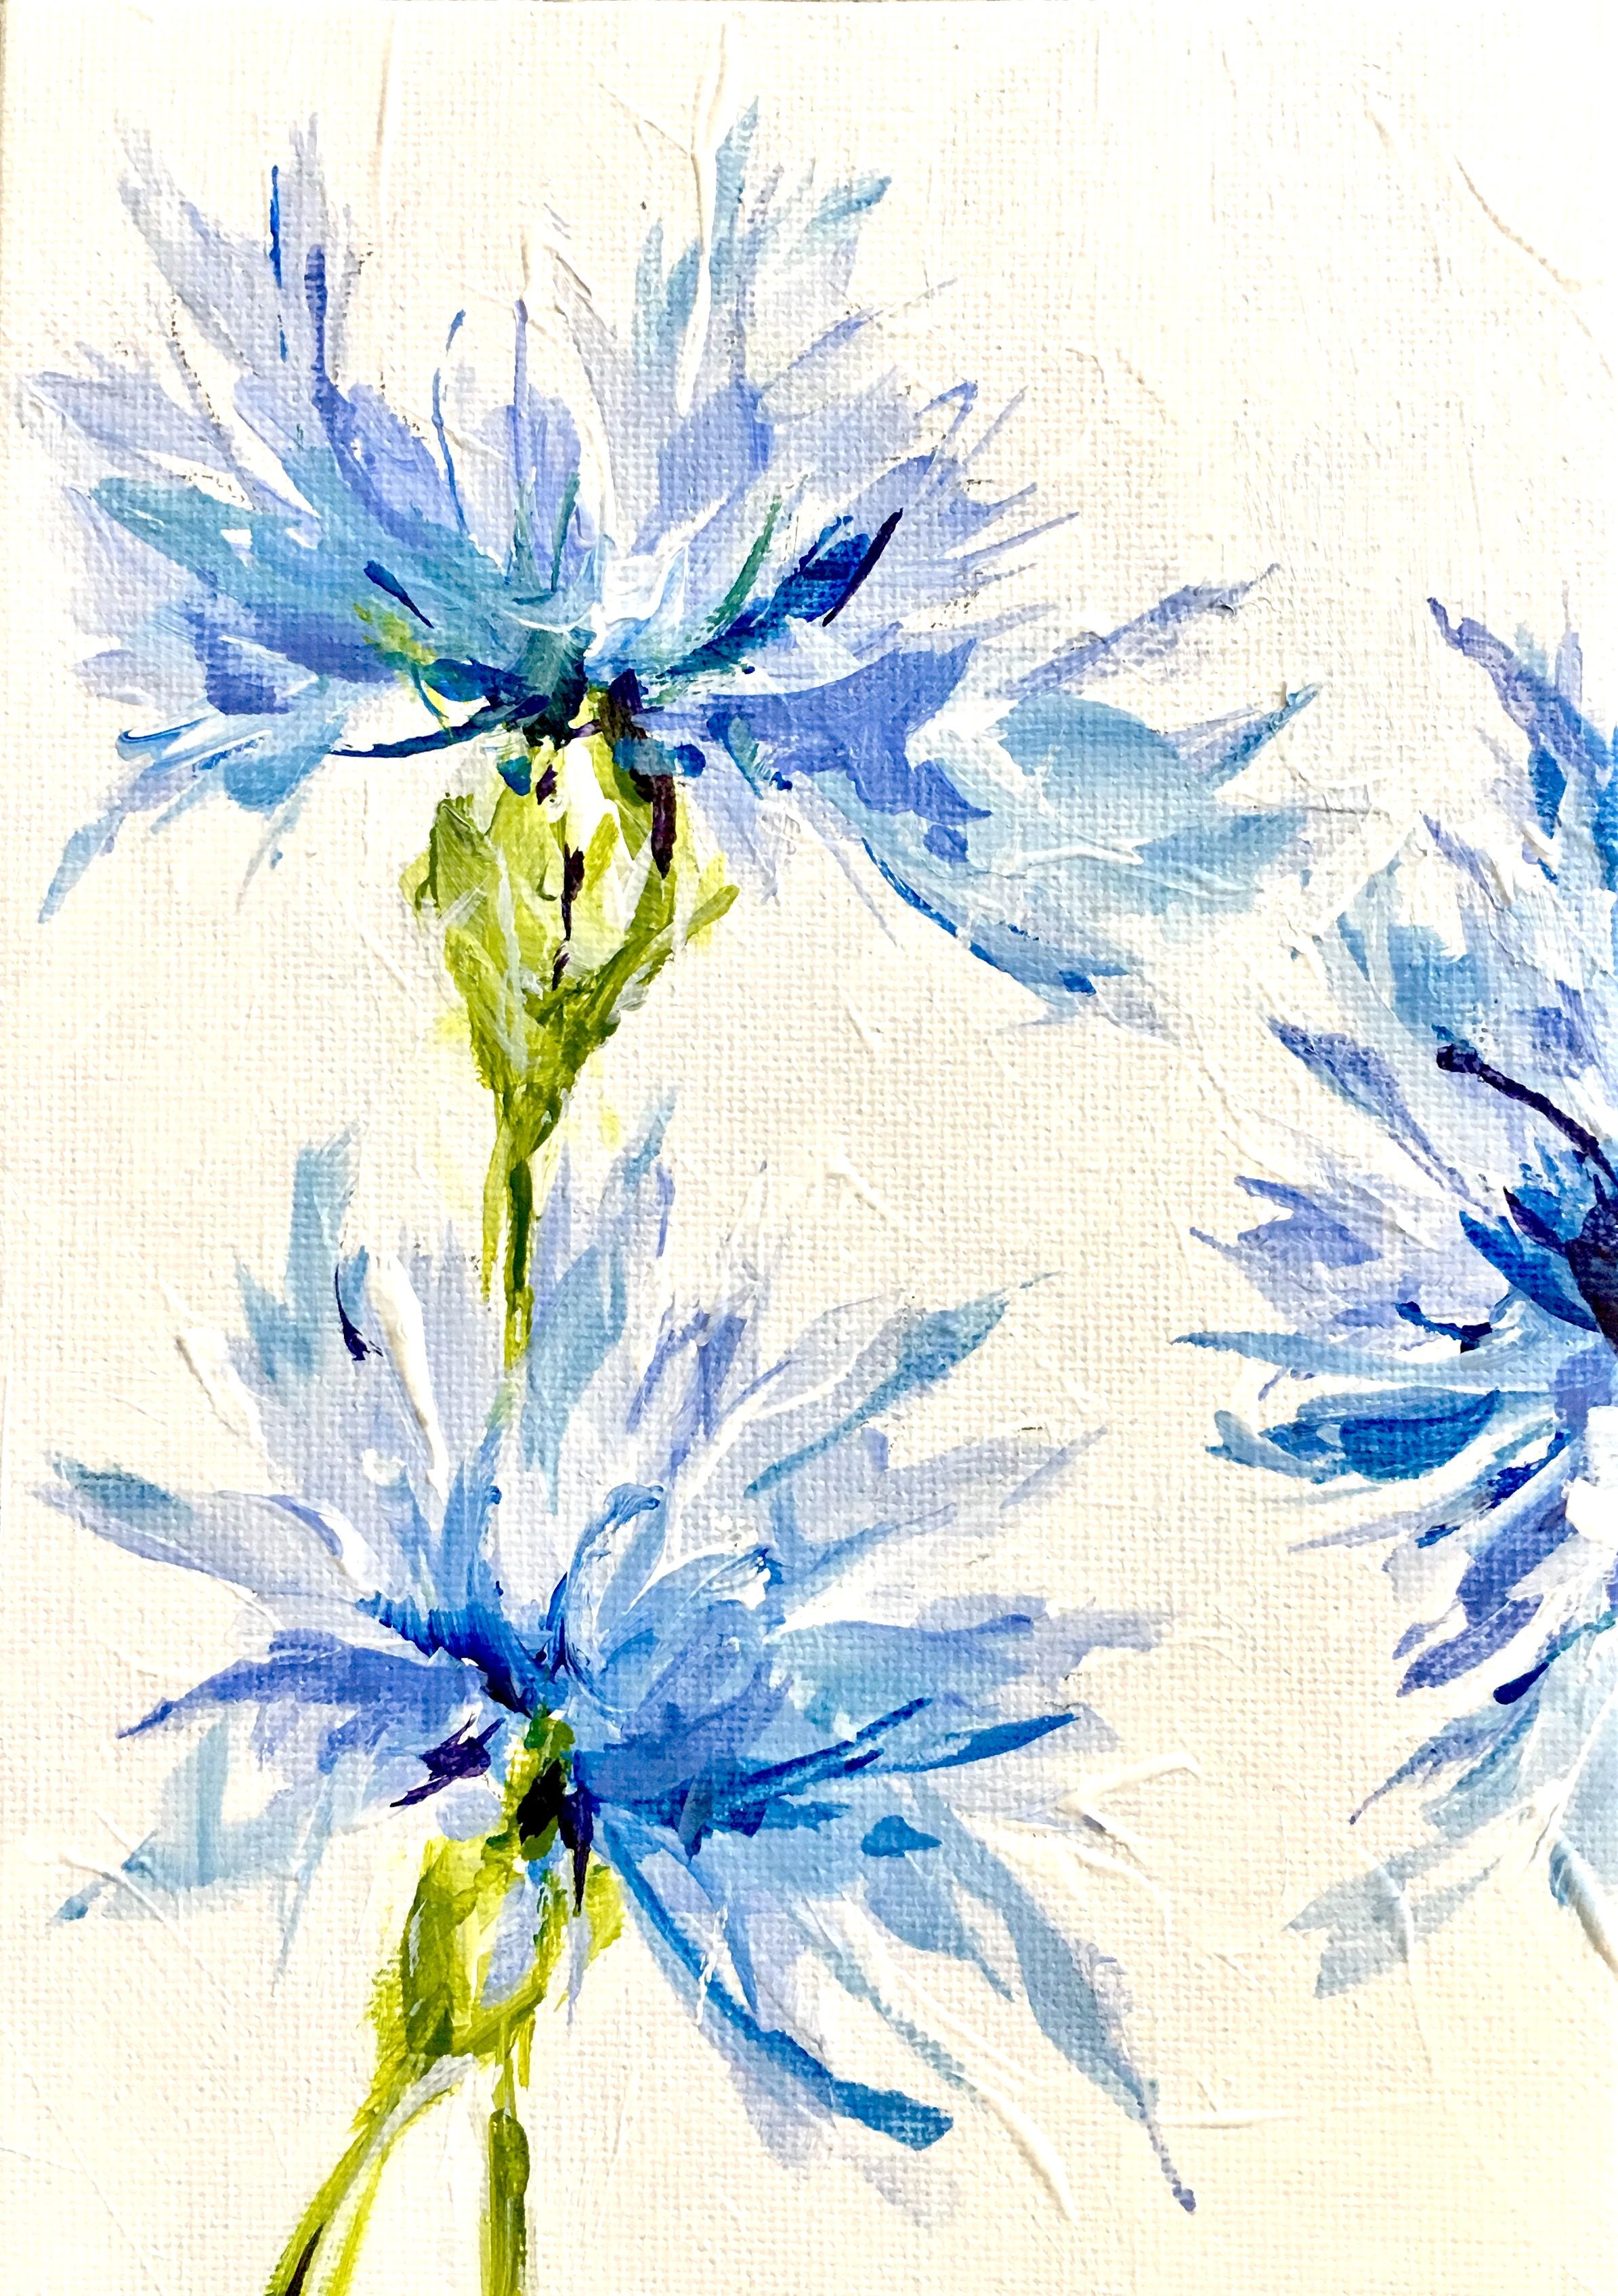 Cornflower Als Symbol Of Hope Www Susanpepedesigns Com